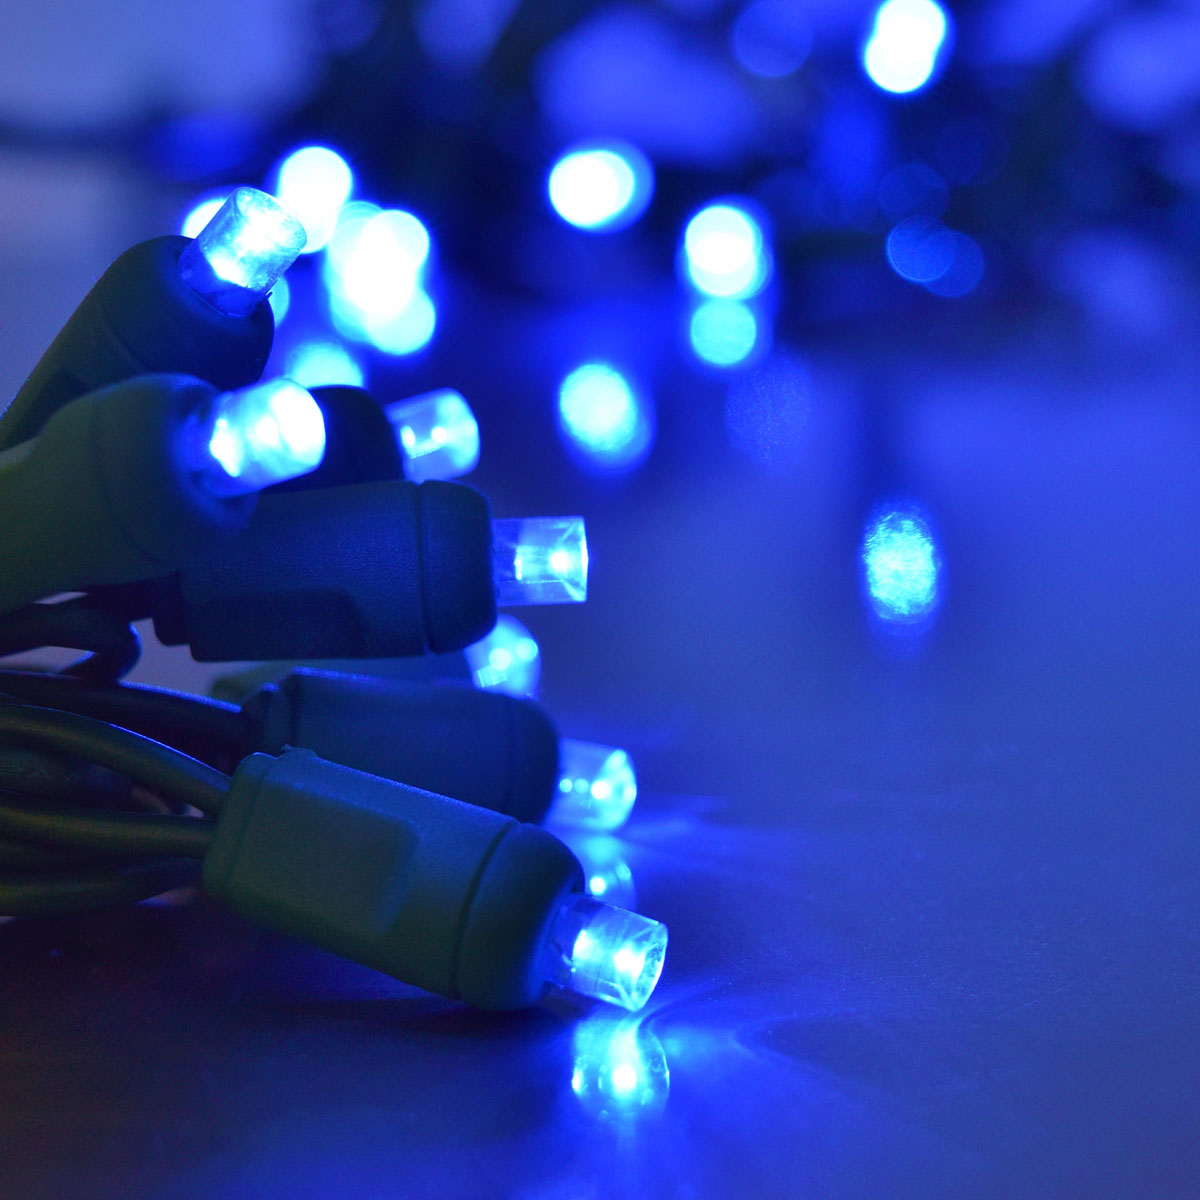 Blue led string light strand 50 lights blue led wide angle string lights green cord 50 lights aloadofball Image collections